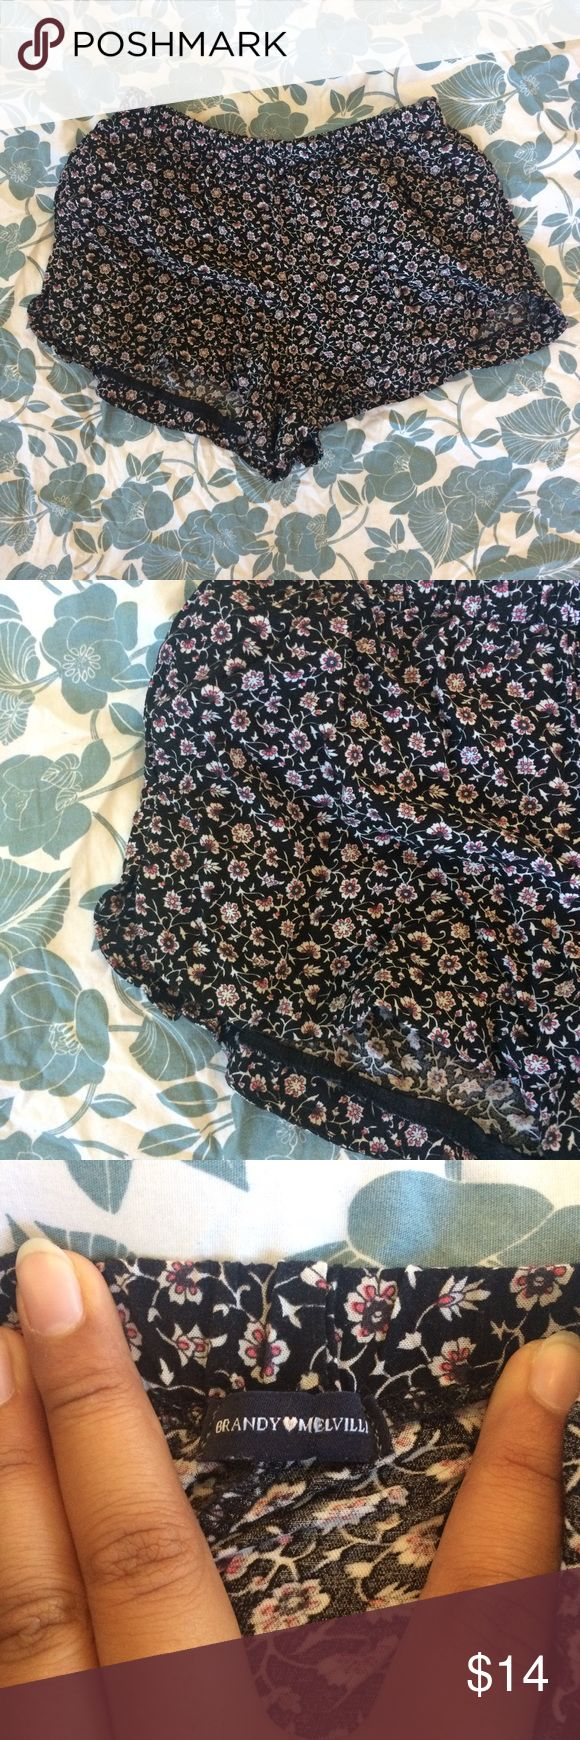 (XS-M) NWT Brandy Melville Floral Zadie Shorts Brandy Melville floral zadie shorts - one size fits most but would generally fit an extra small to medium best  New with tags!  All purchases come with brandy melville stickers  Comes from a smoke free and pet free home  Bundle and save! Brandy Melville Shorts